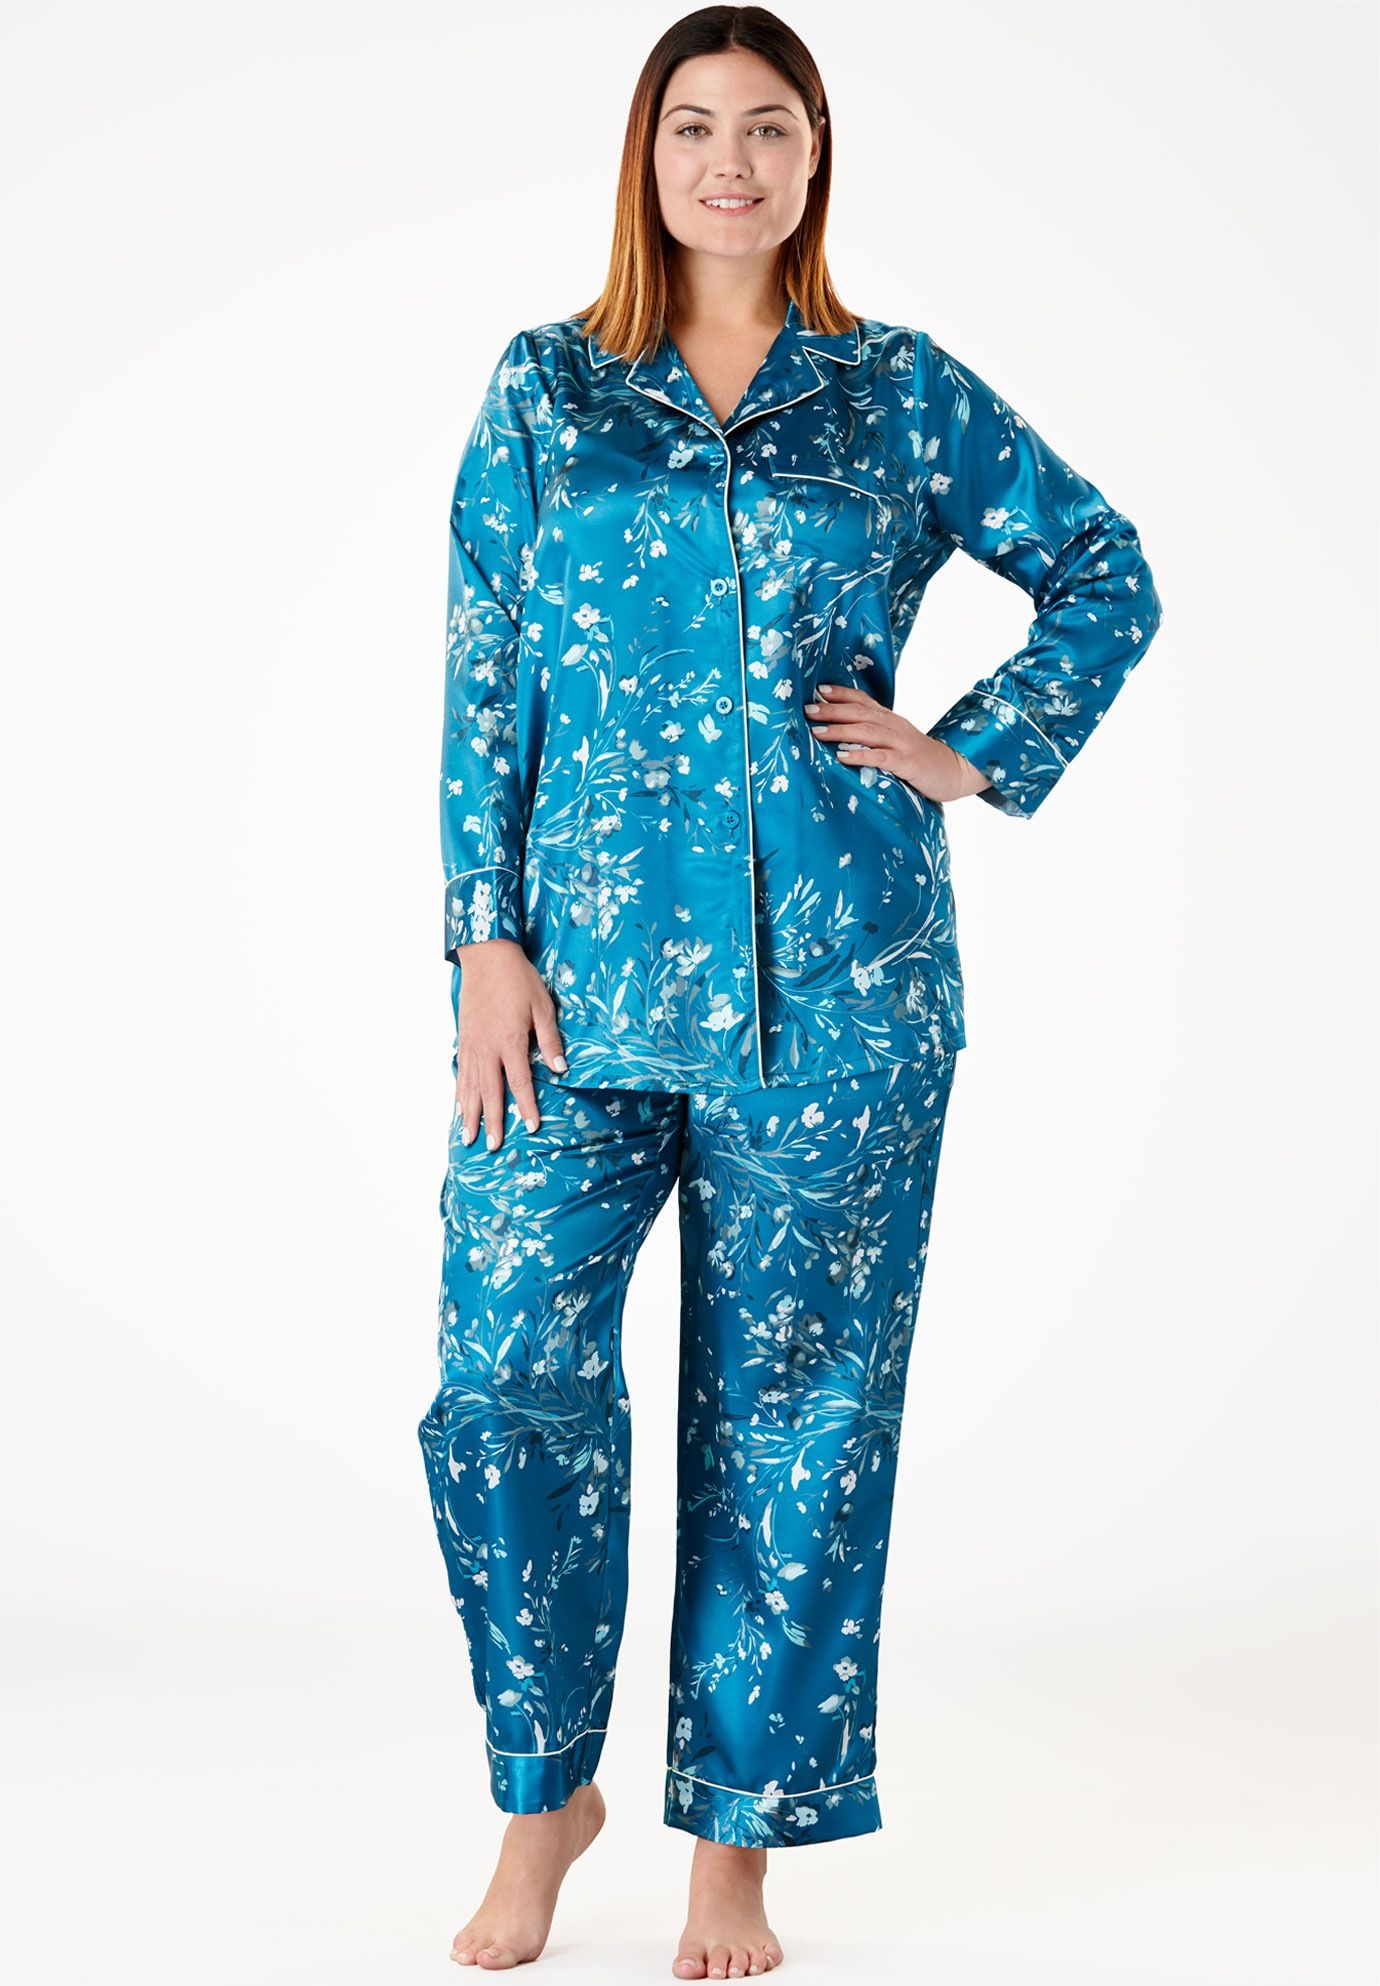 05c531ef6d98c Luxe Satin Pajama Set by Amoureuse - Women s Plus Size Clothing ...